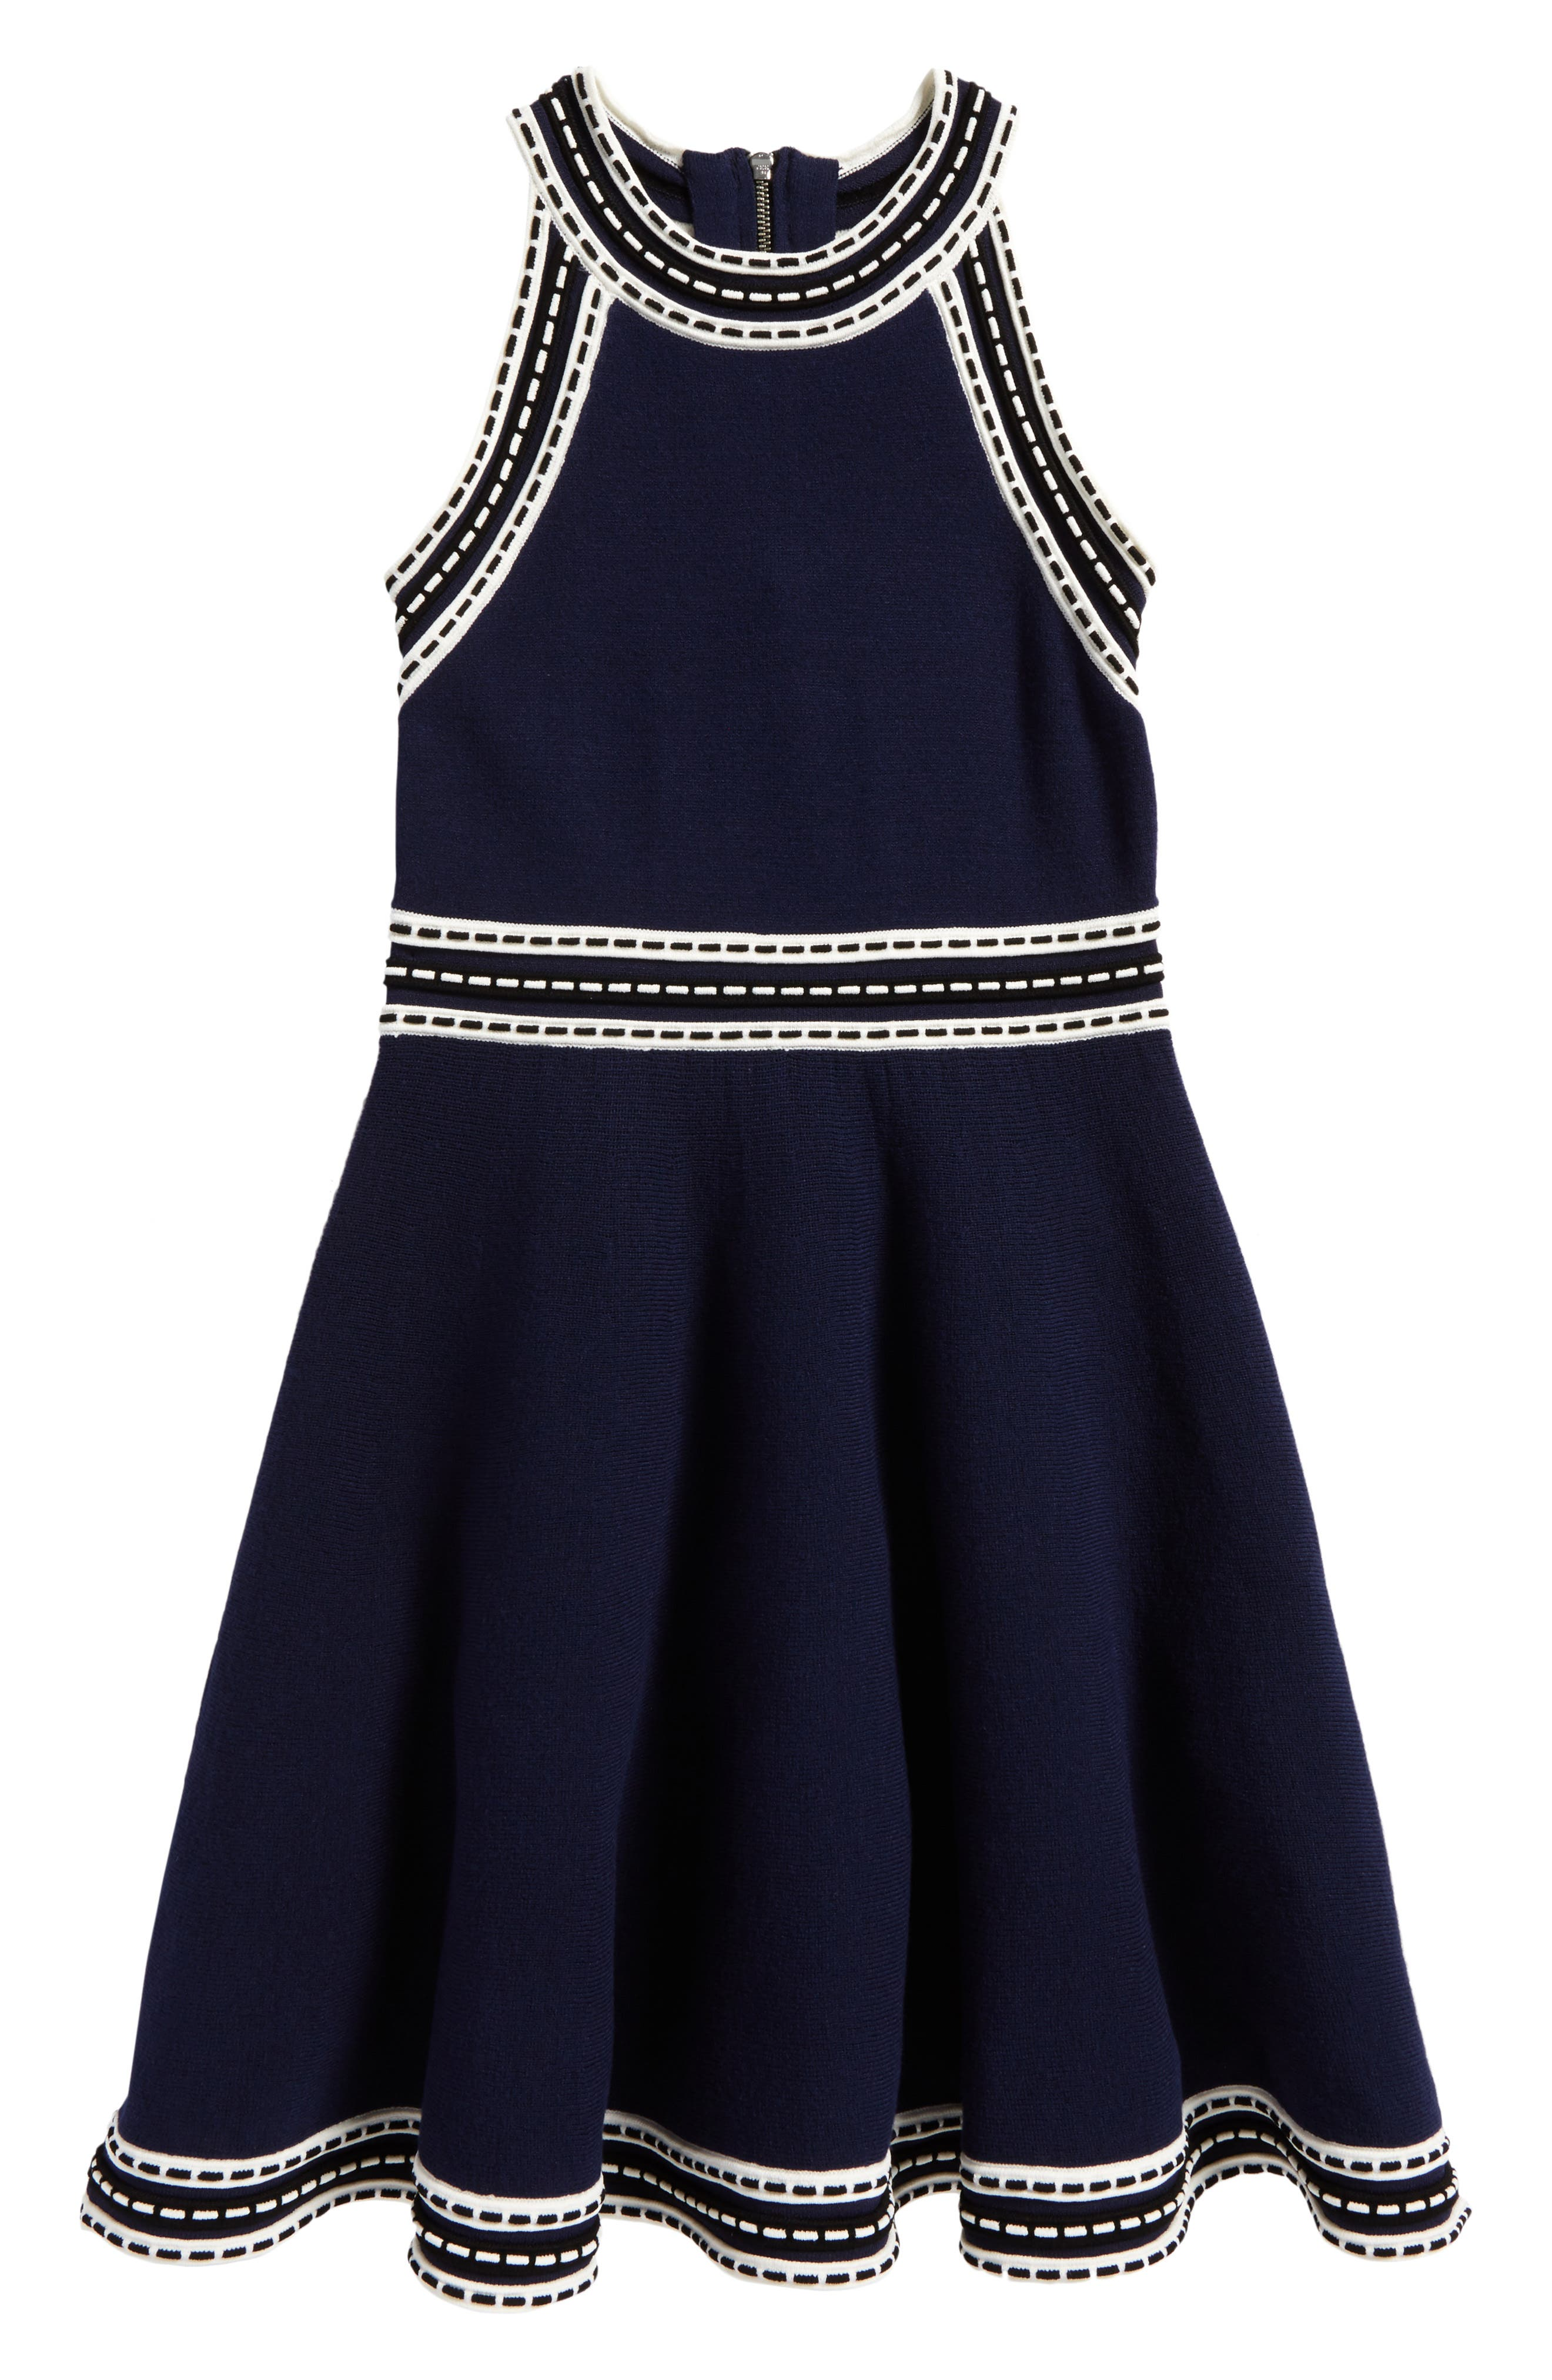 Milly Minis Contrast Trim Sleeveless Dress (Big Girls)